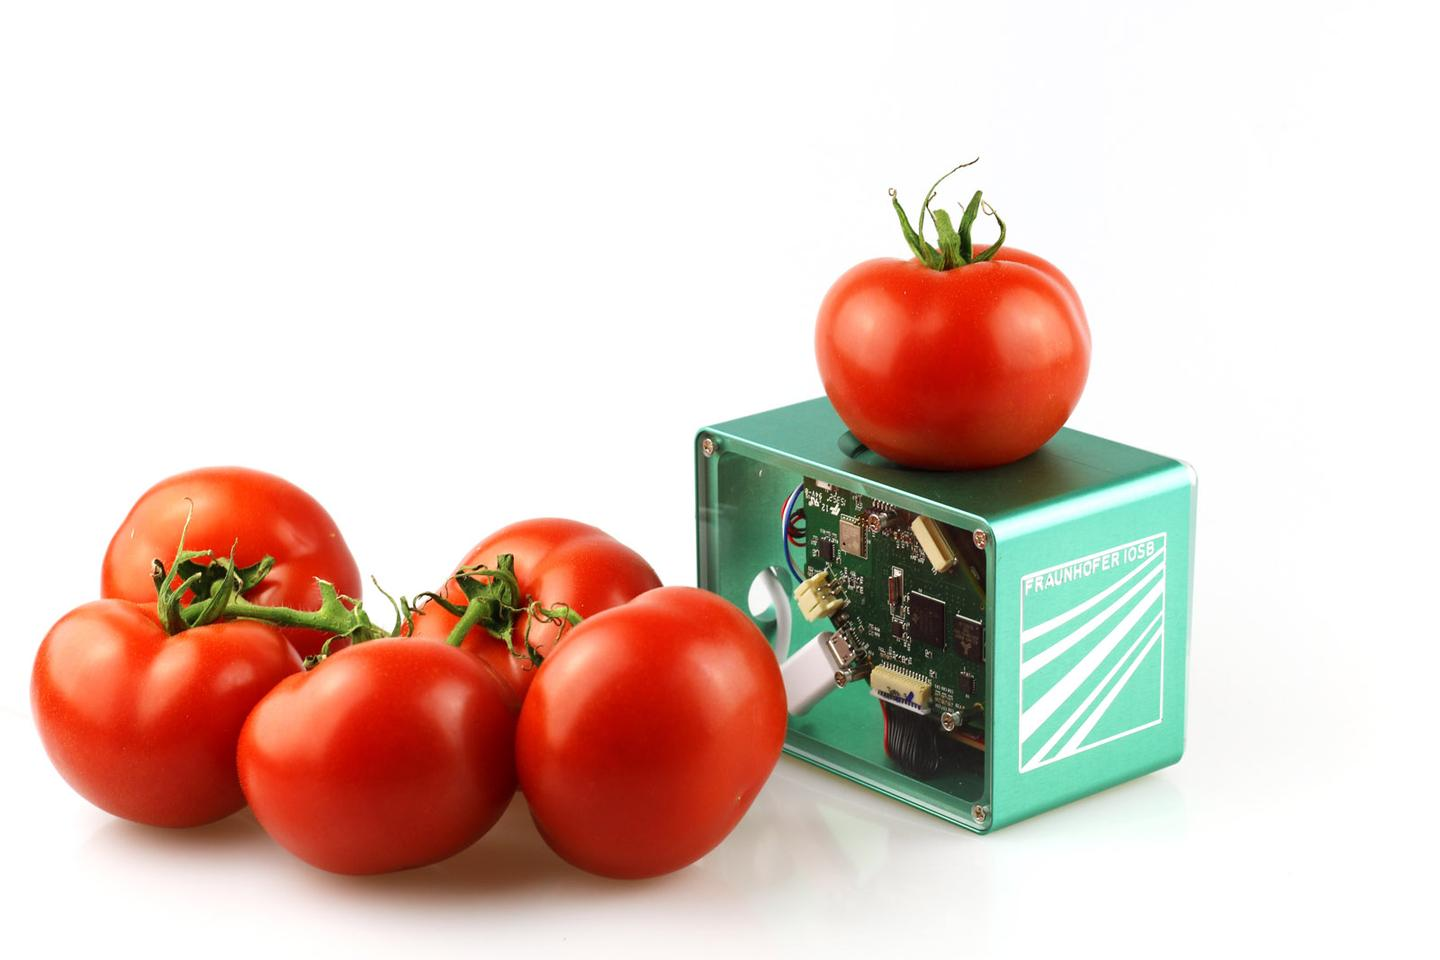 A pocket scanner under development at Fraunhofer relies infrared light to determine the freshness of food